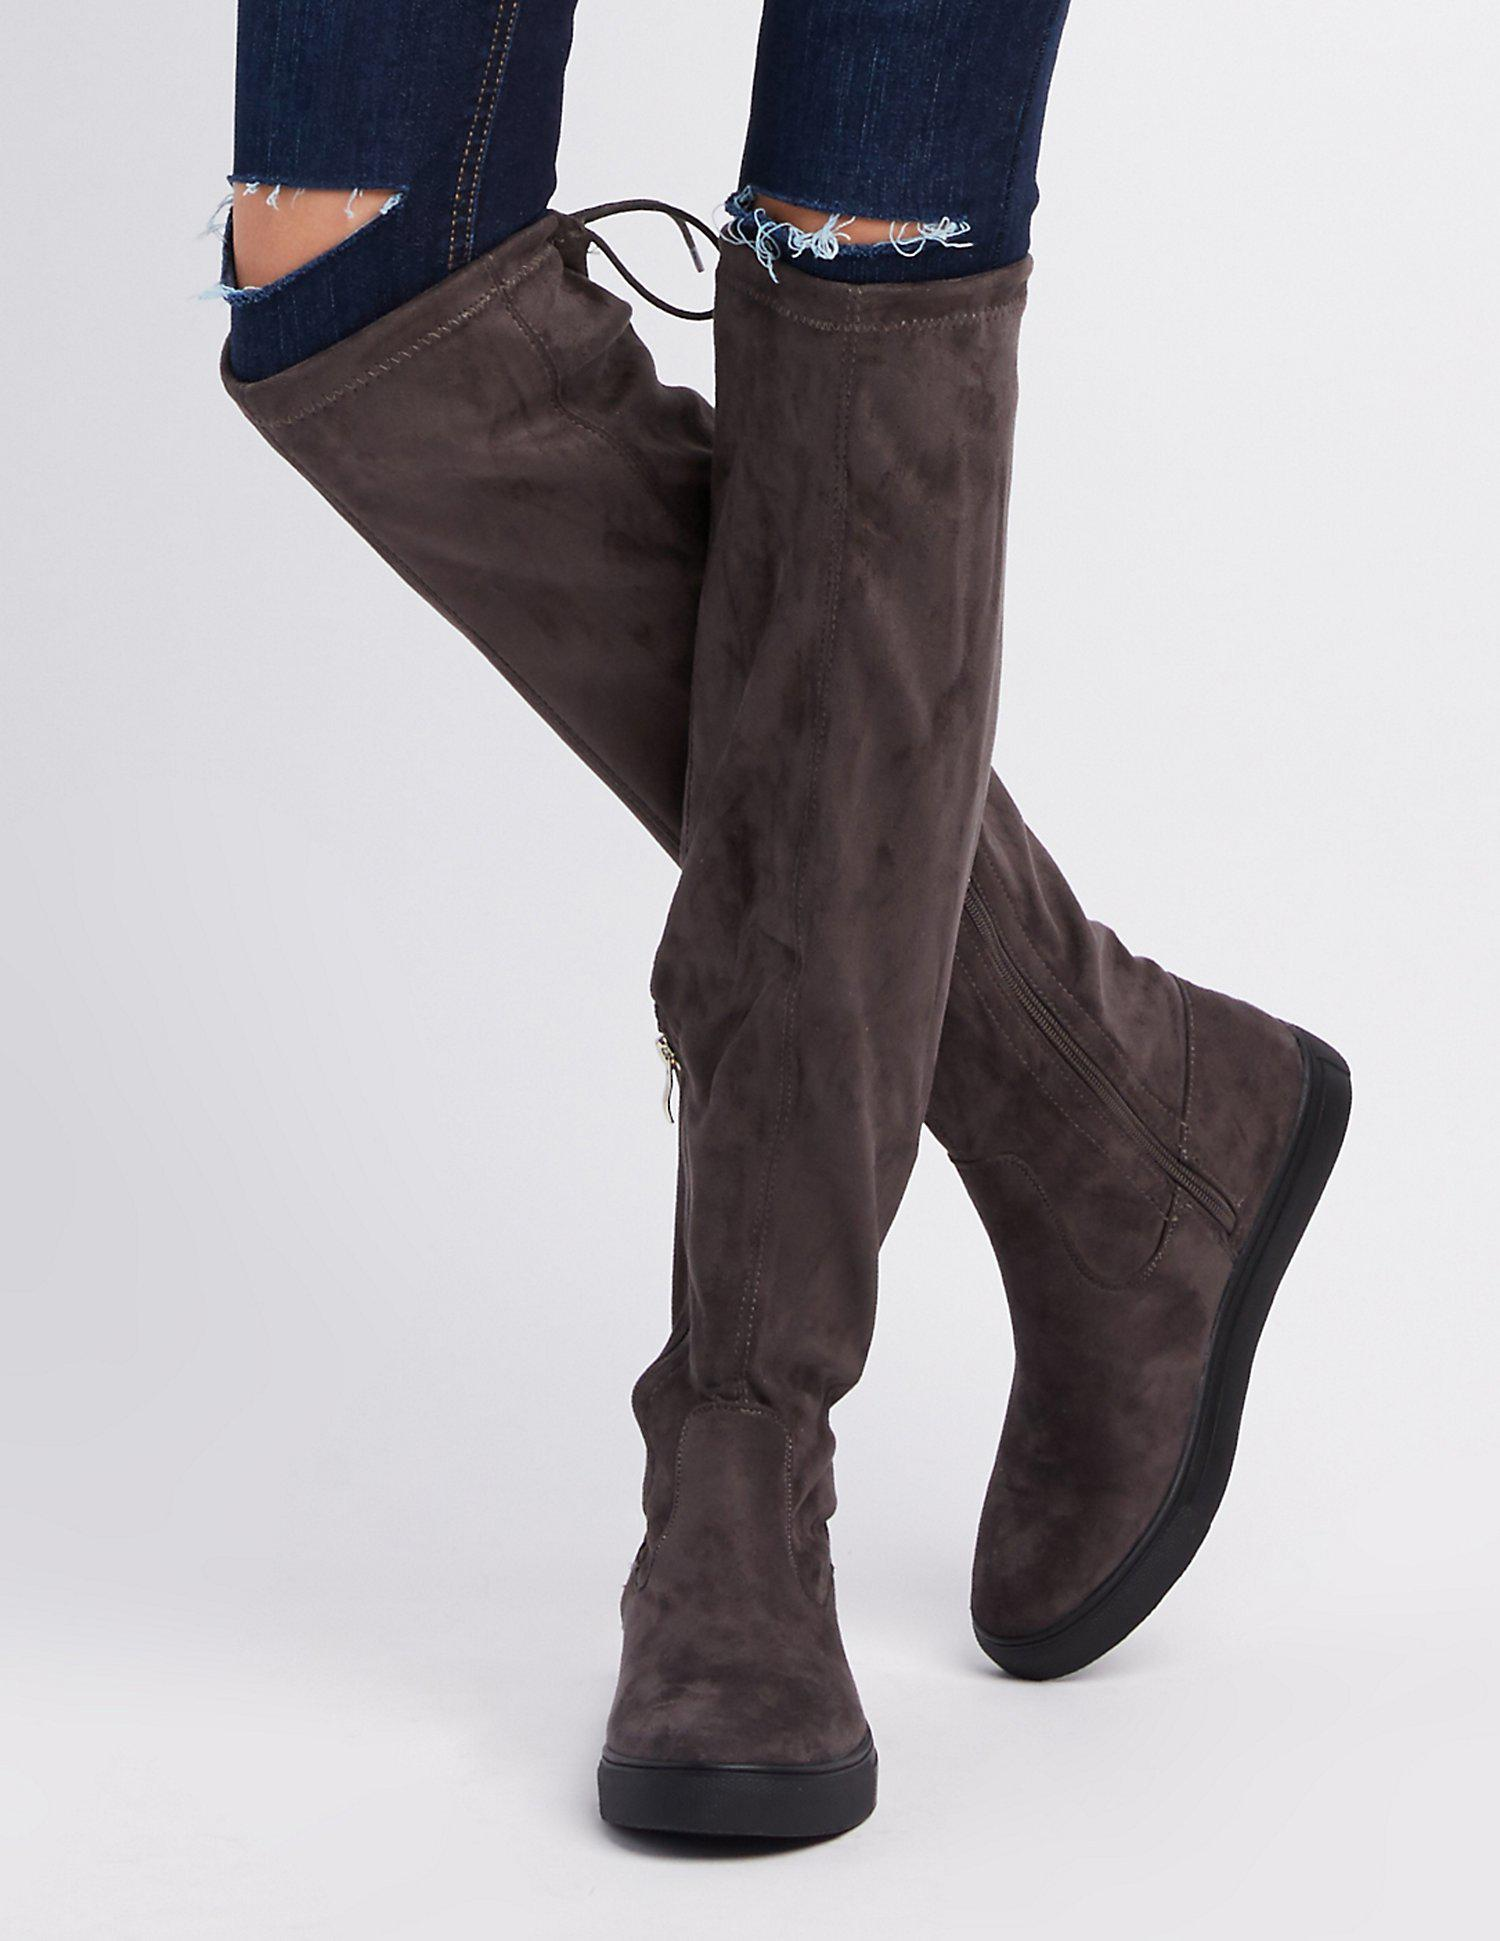 867ec9ca737 Lyst - Charlotte Russe Qupid Tie-back Over-the-knee Flat Boots in Gray